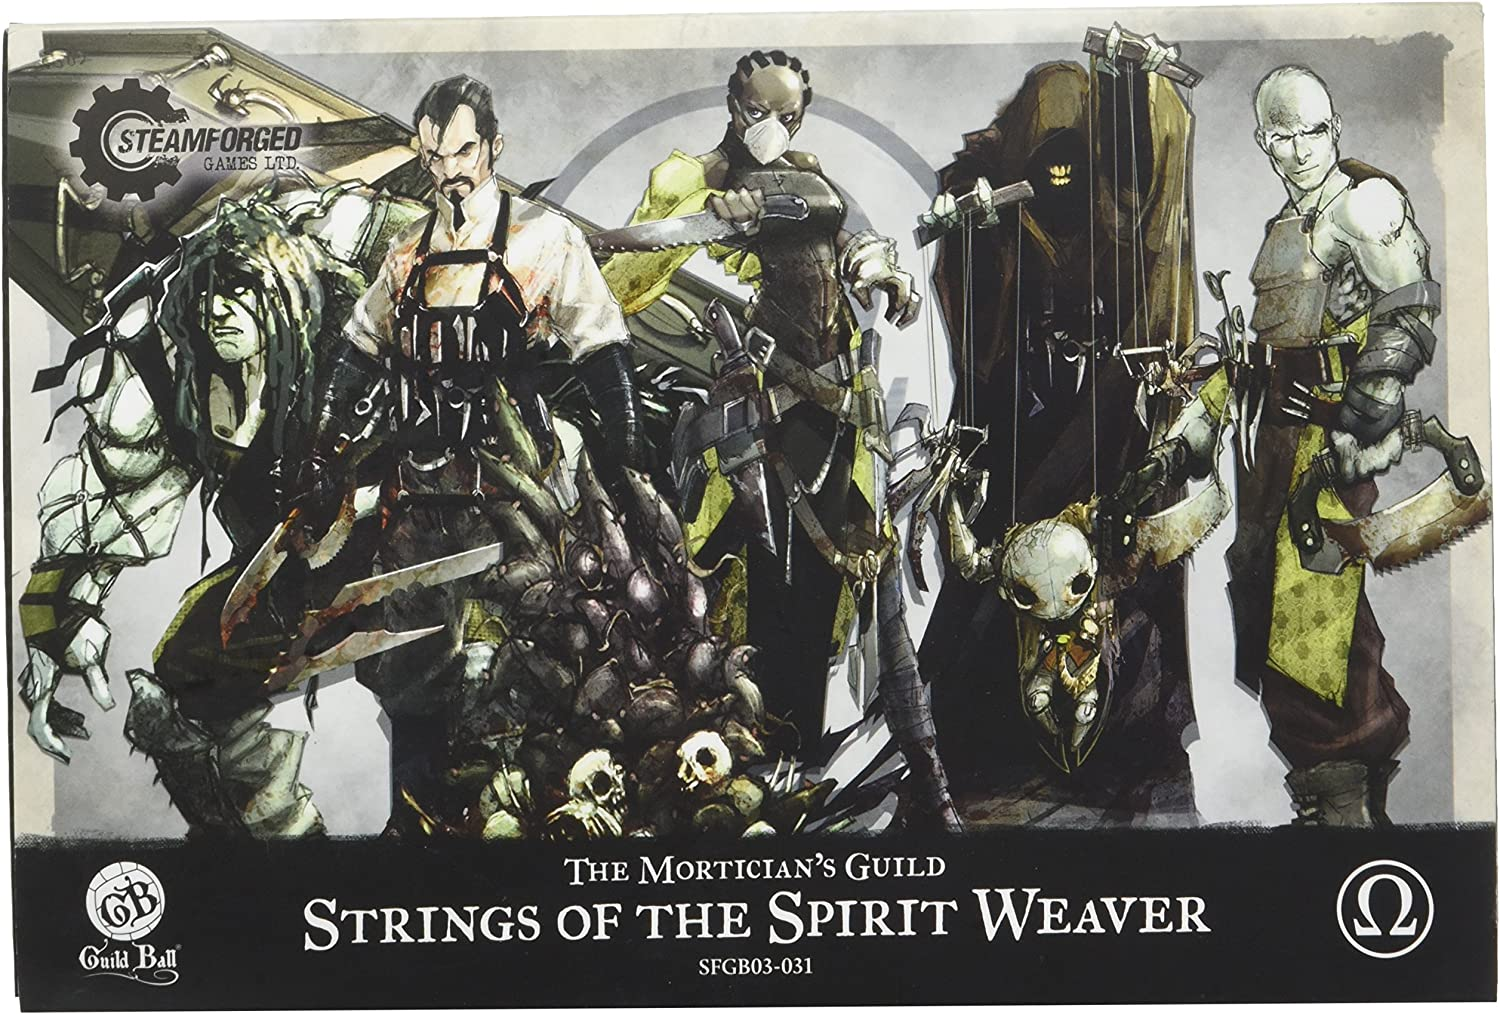 Steamfoged Games Guild Ball  Mortician Strings of The Spirit Weaver Miniature Game Figure